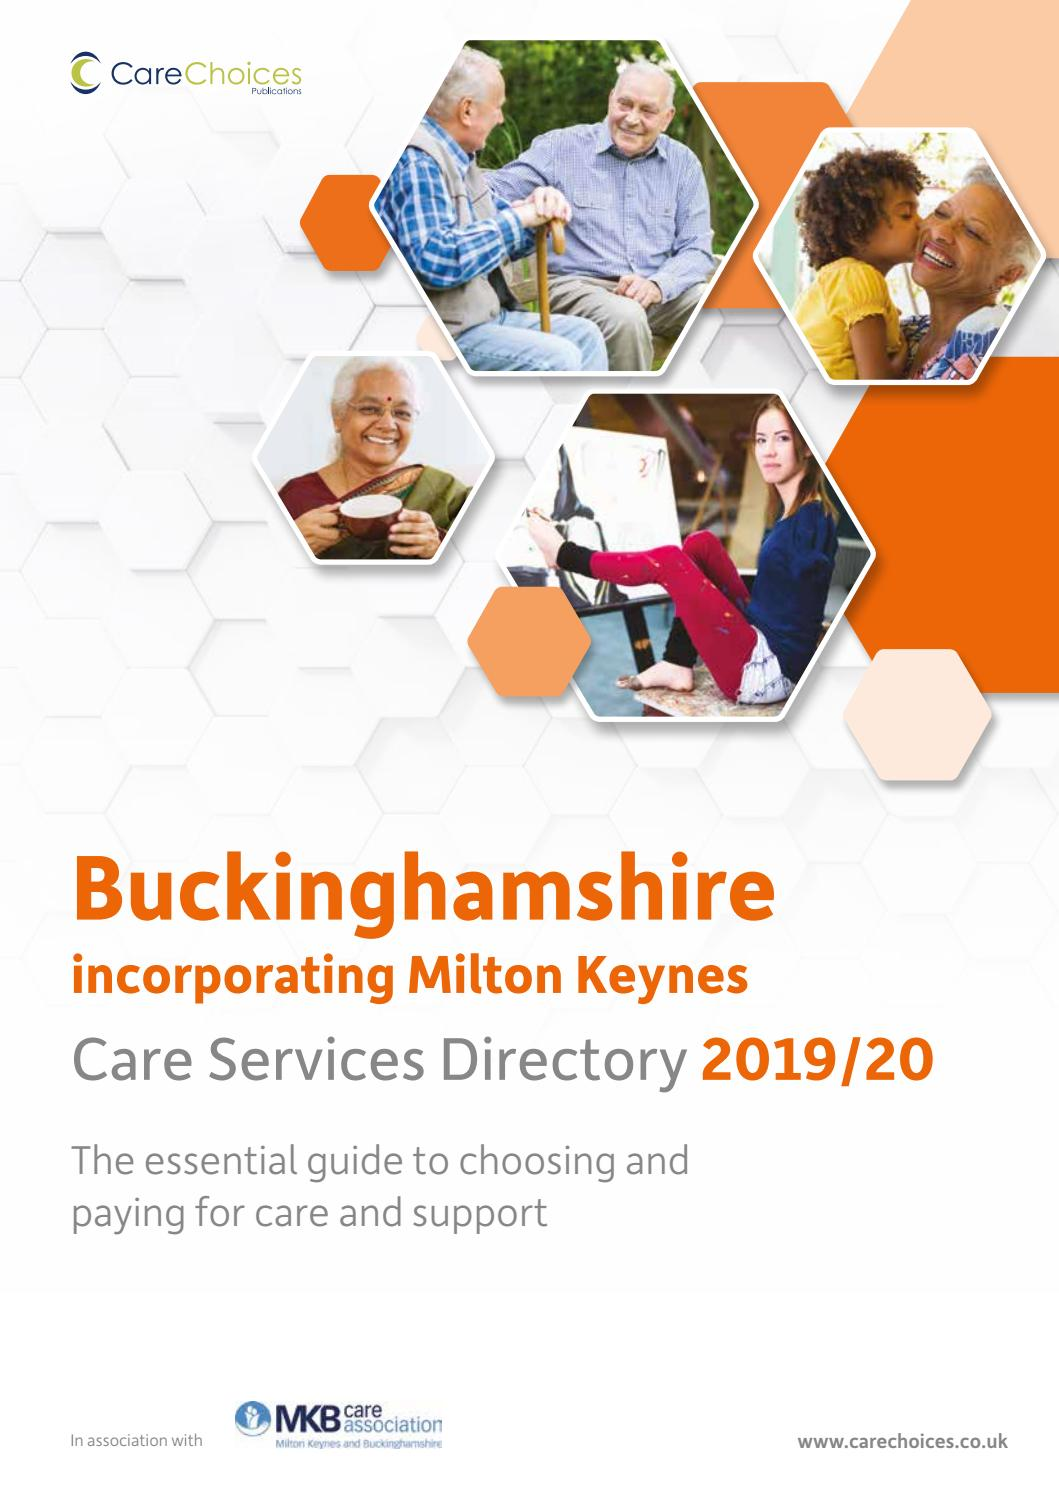 Buckinghamshire And Milton Keynes Care Services Directory 2019 20 By Care Choices Ltd Issuu